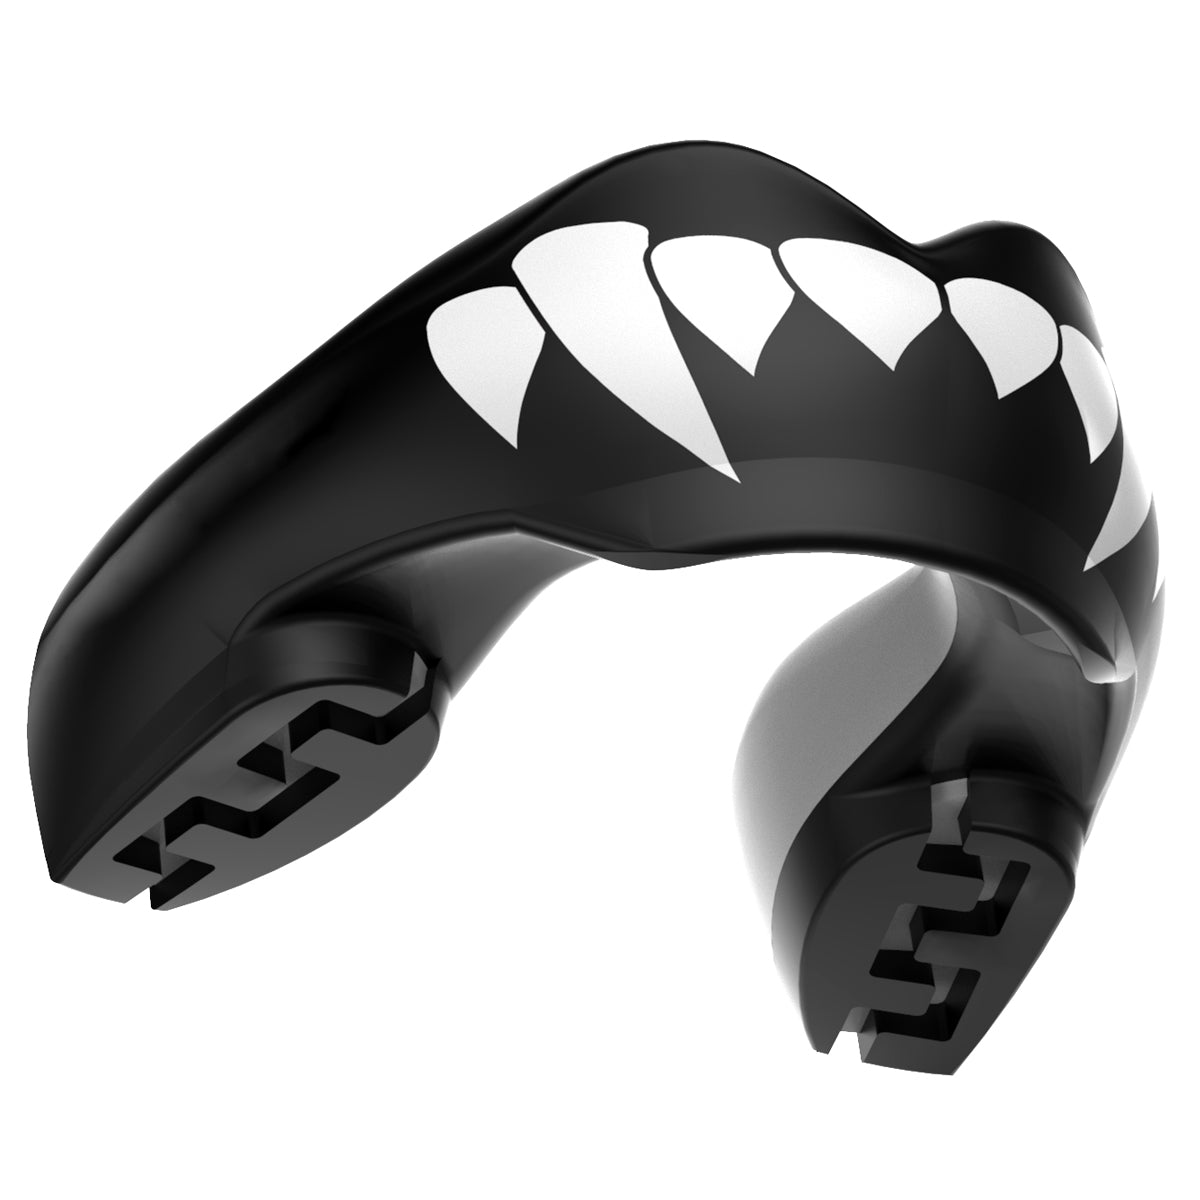 BRACES MOUTHGUARD WITH TEETH